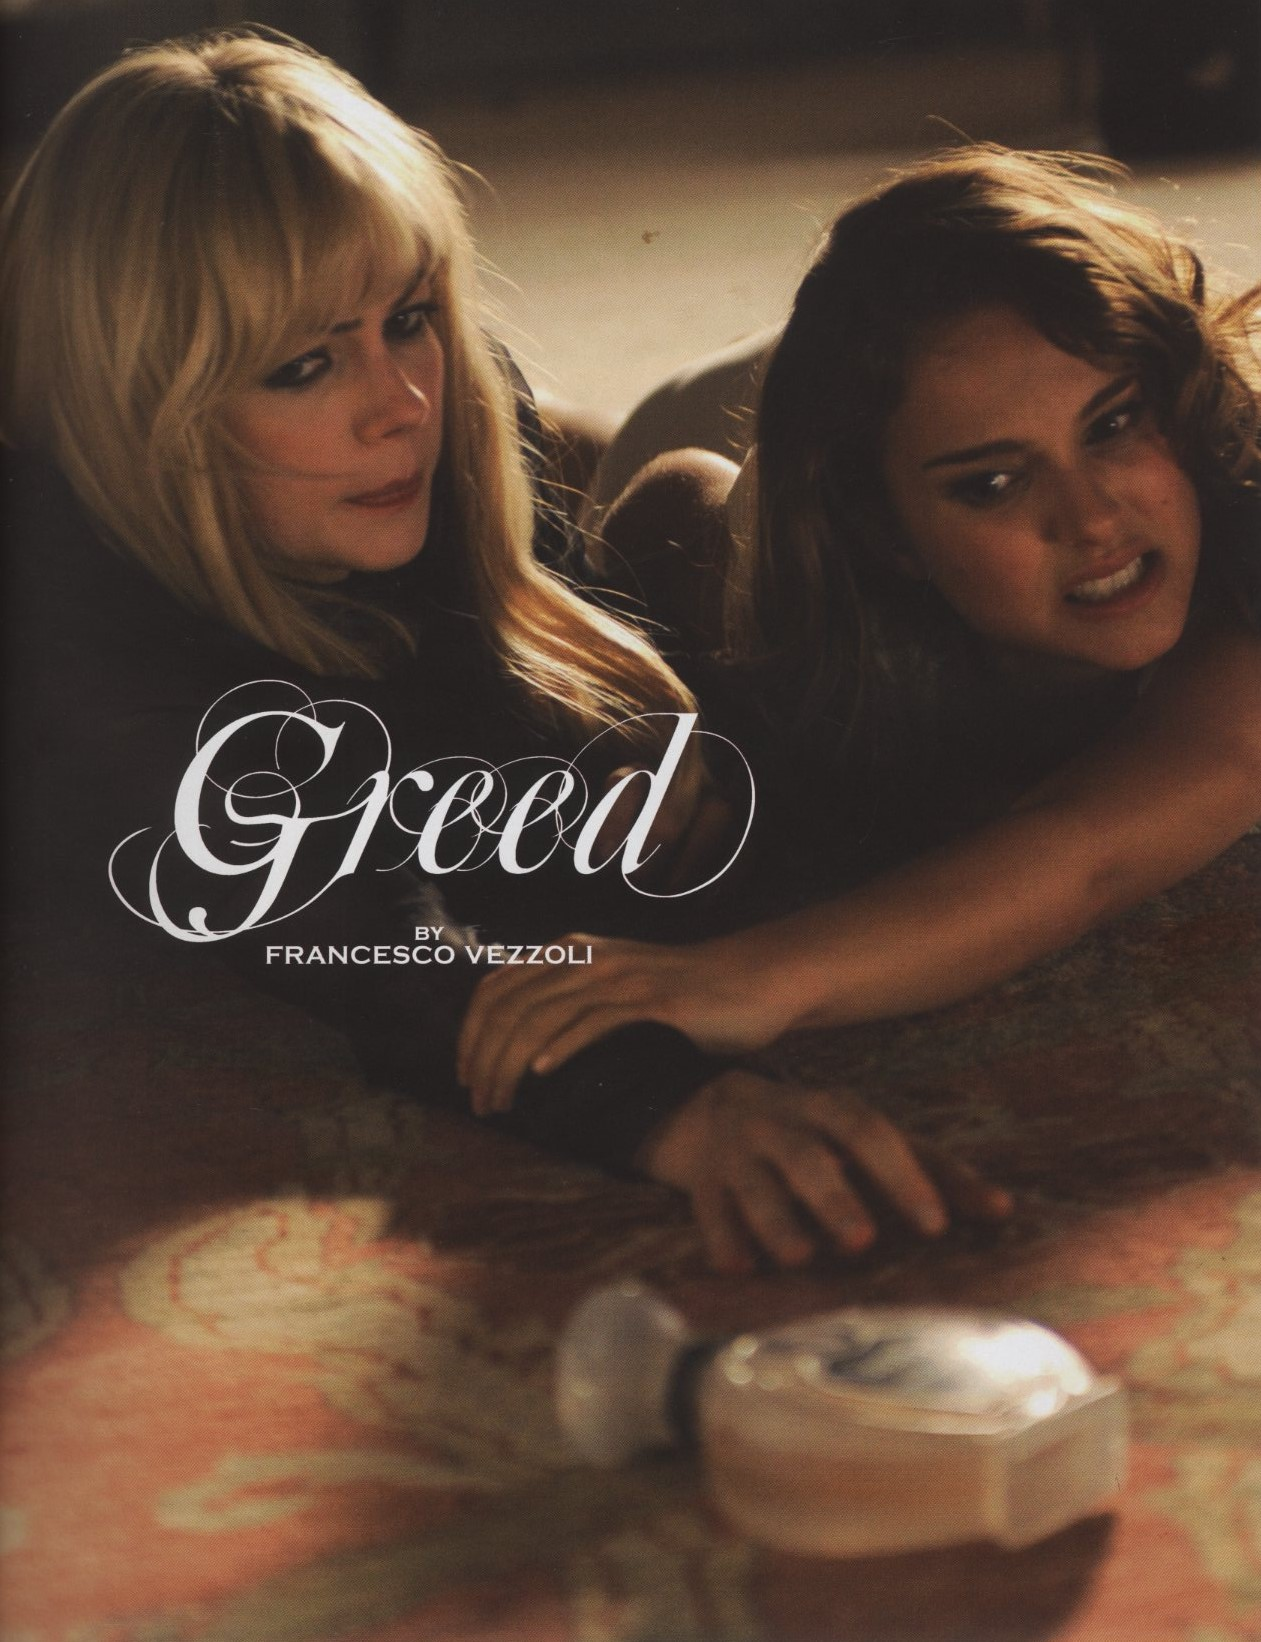 MICHELLE WILLIAMS AND NATALIE PORTMAN GREED BY FRANCESCO VEZZOLI SELF SERVICE SPRING/SUMMER 2009